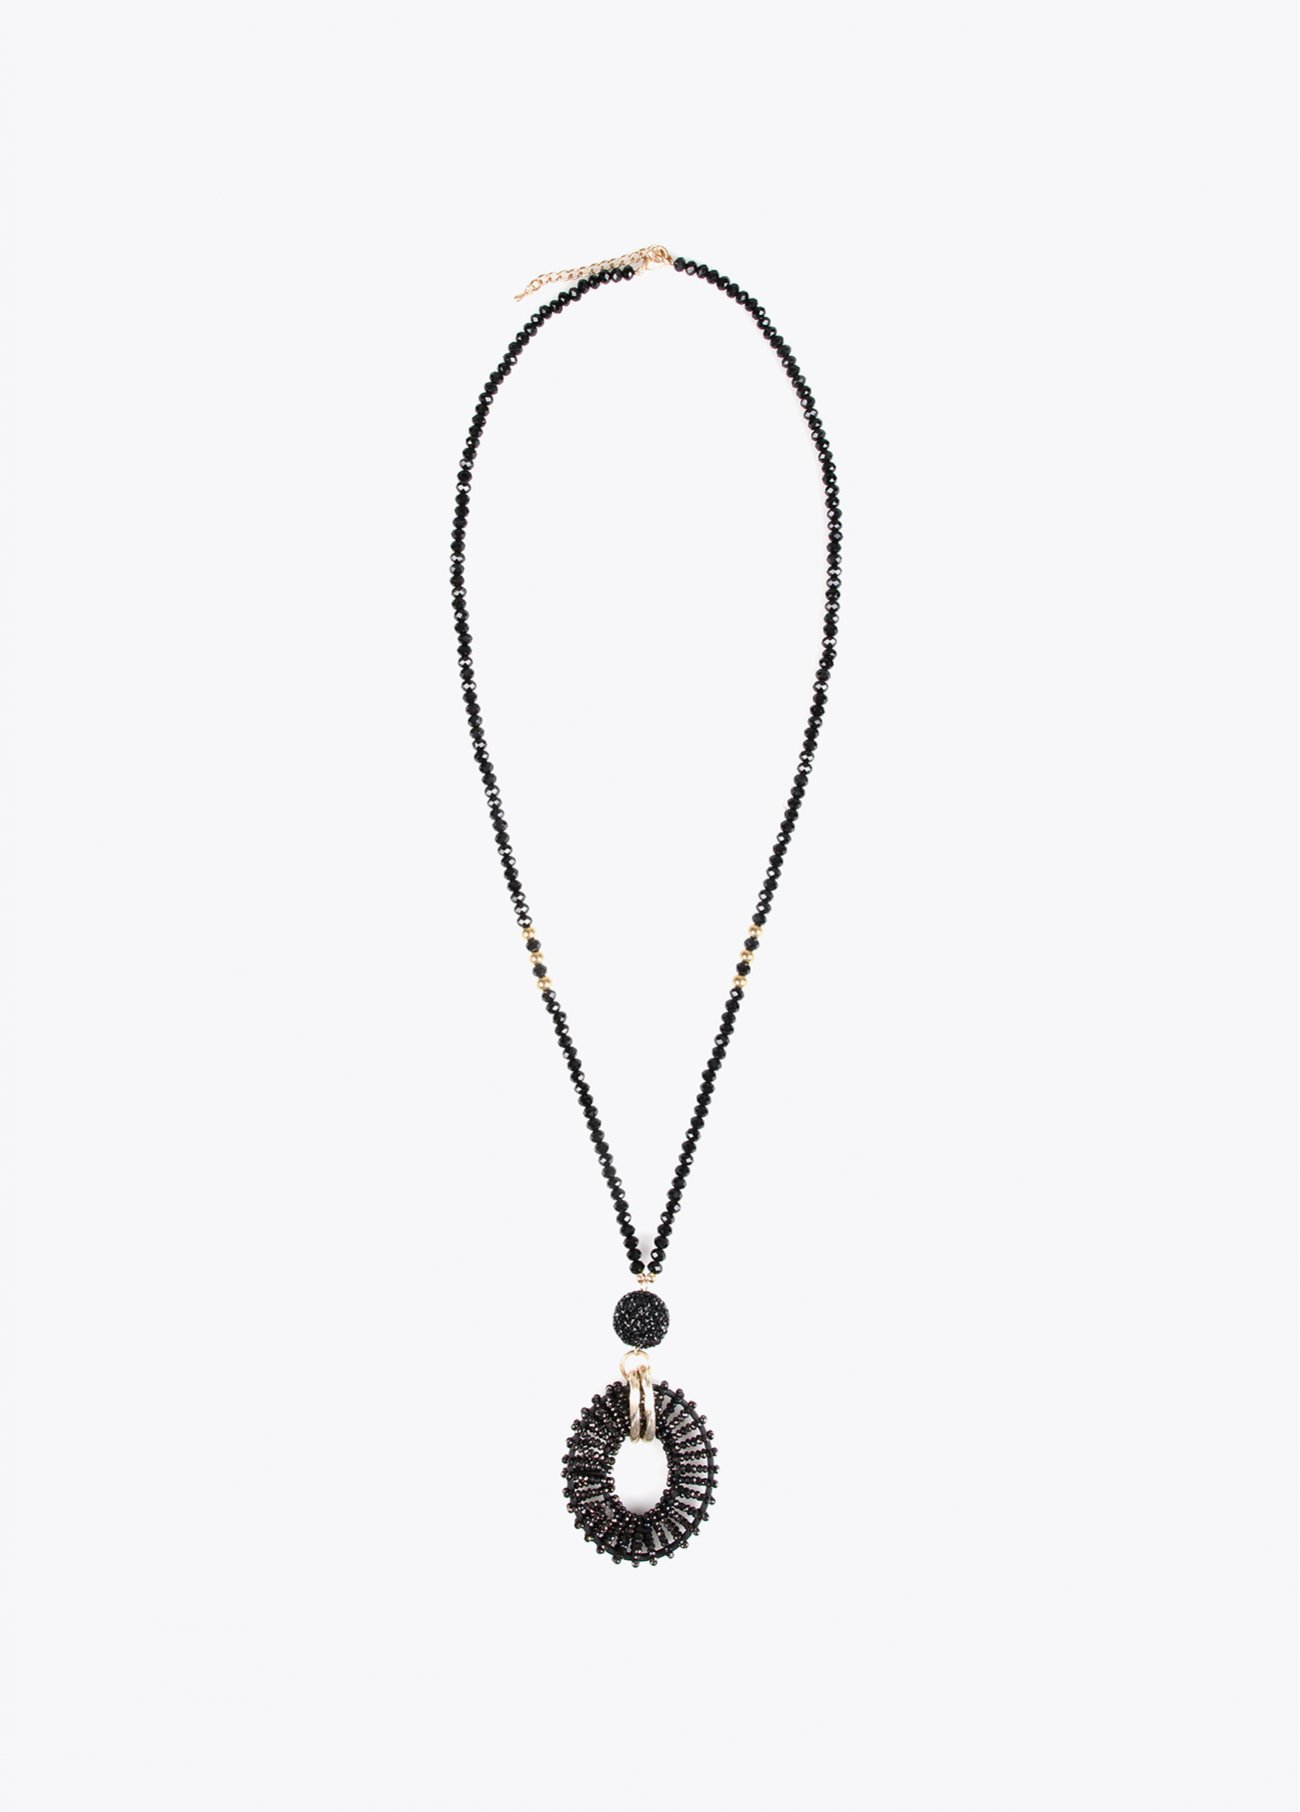 Long necklace with circular pendant